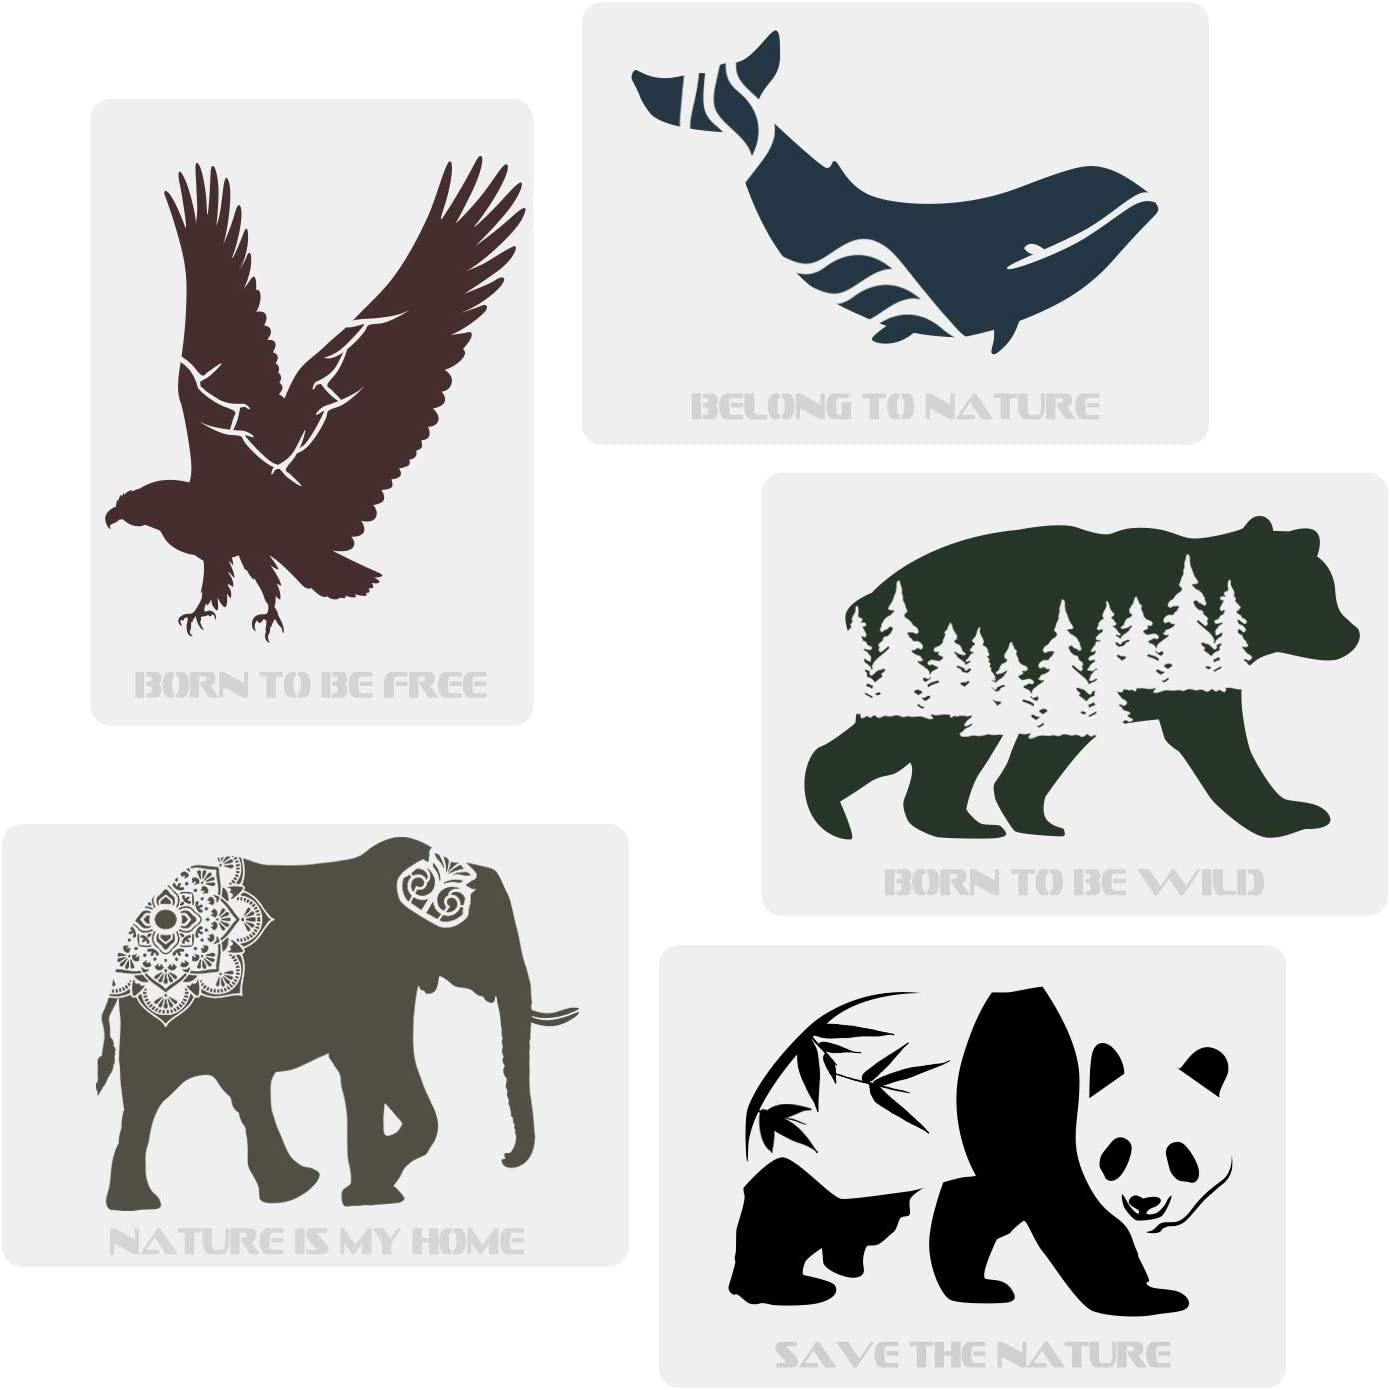 CODOHI 5 Packs Wild Animals Stencils - Bear Panda Whale Eagle Elephant Words Nature Animals Stencils A4 Art Reusable Mylar Template for Journaling DIY Wall Wood Fabric Home Decor 11.7